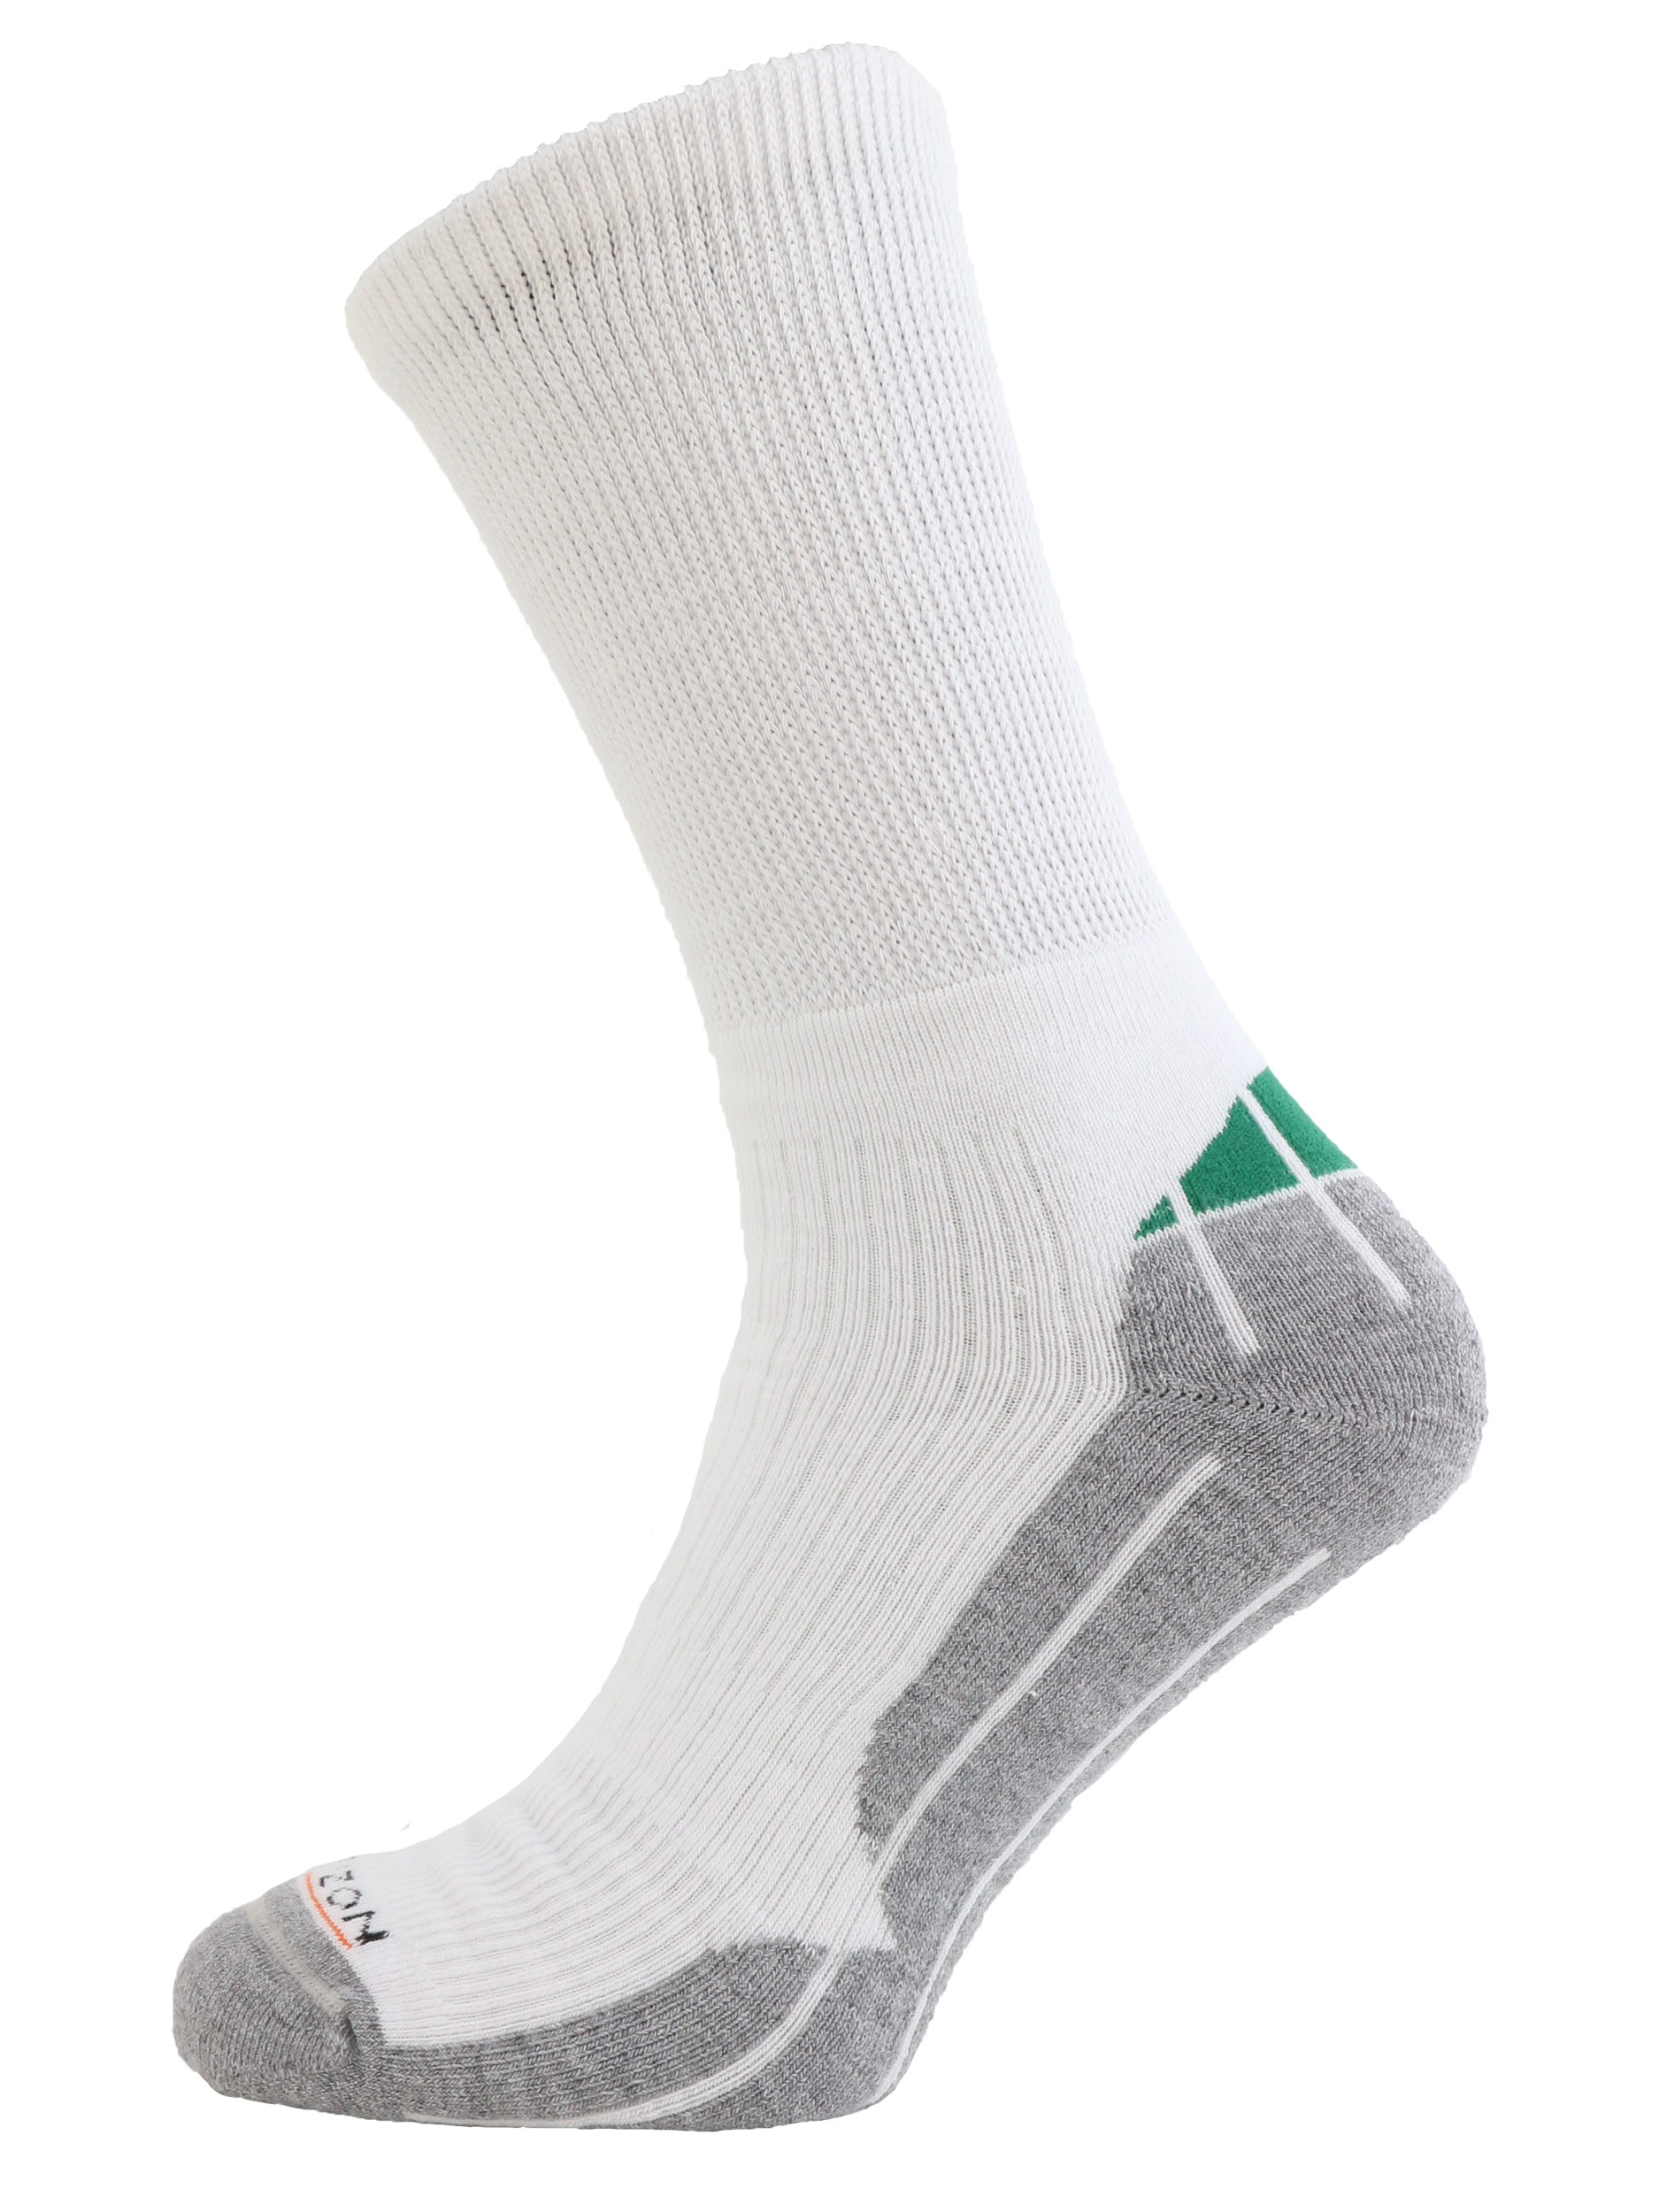 Performance Golf Coolmax Crew Sock White Green